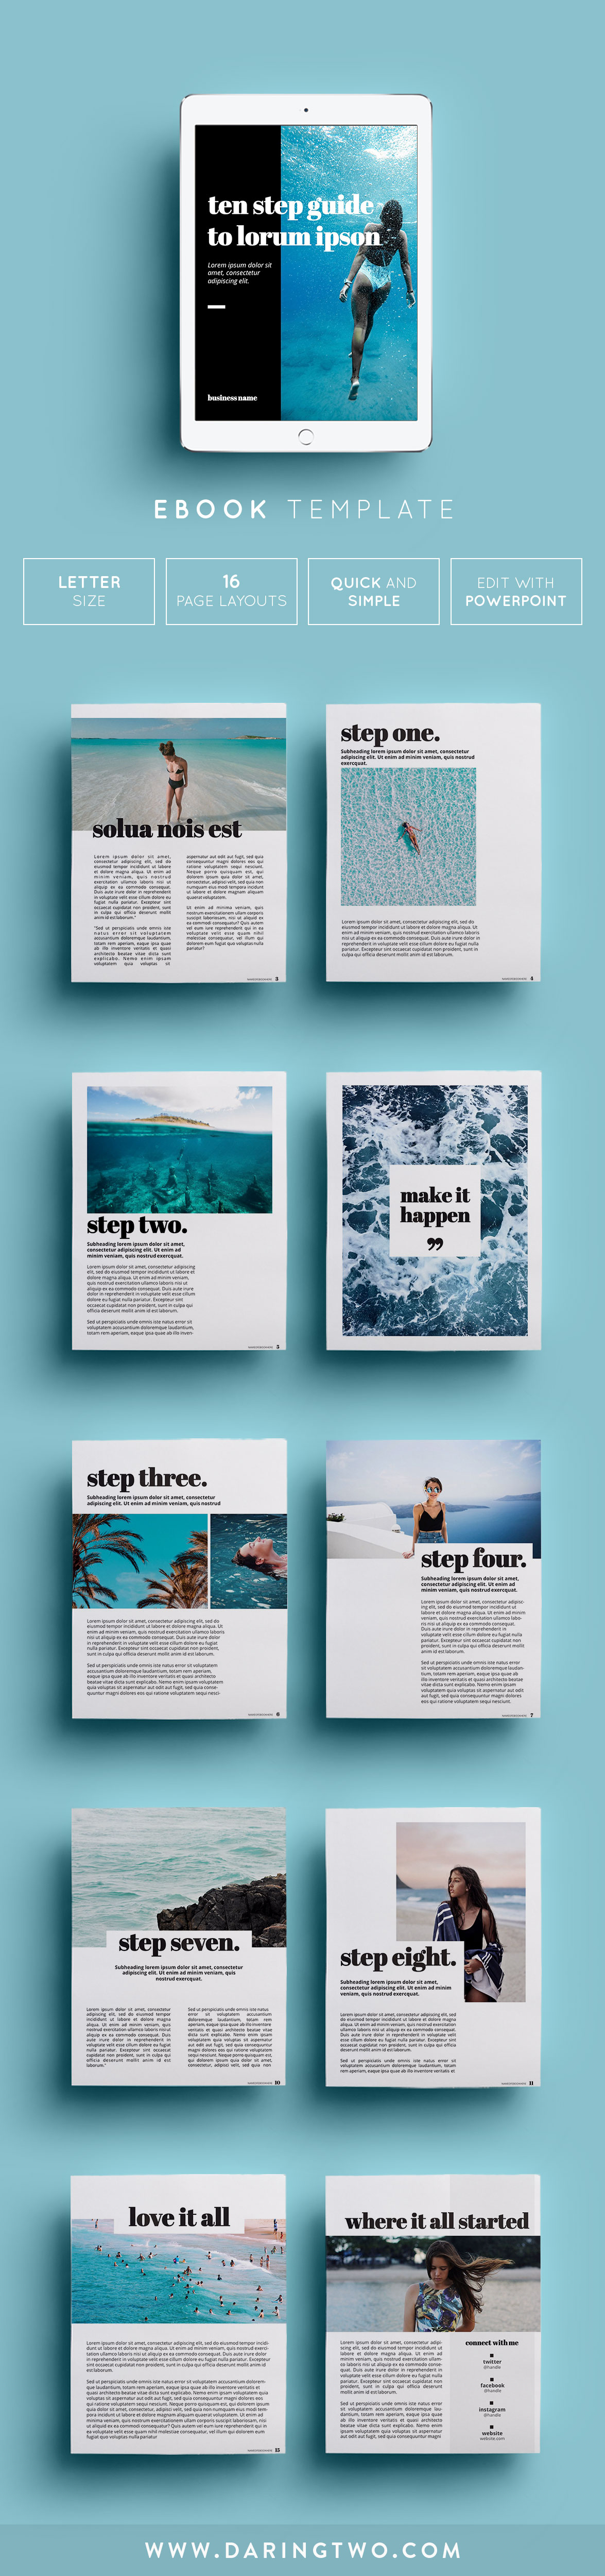 T2 Ebook Template // 16 Pages • Fully Editable + Customizable ...